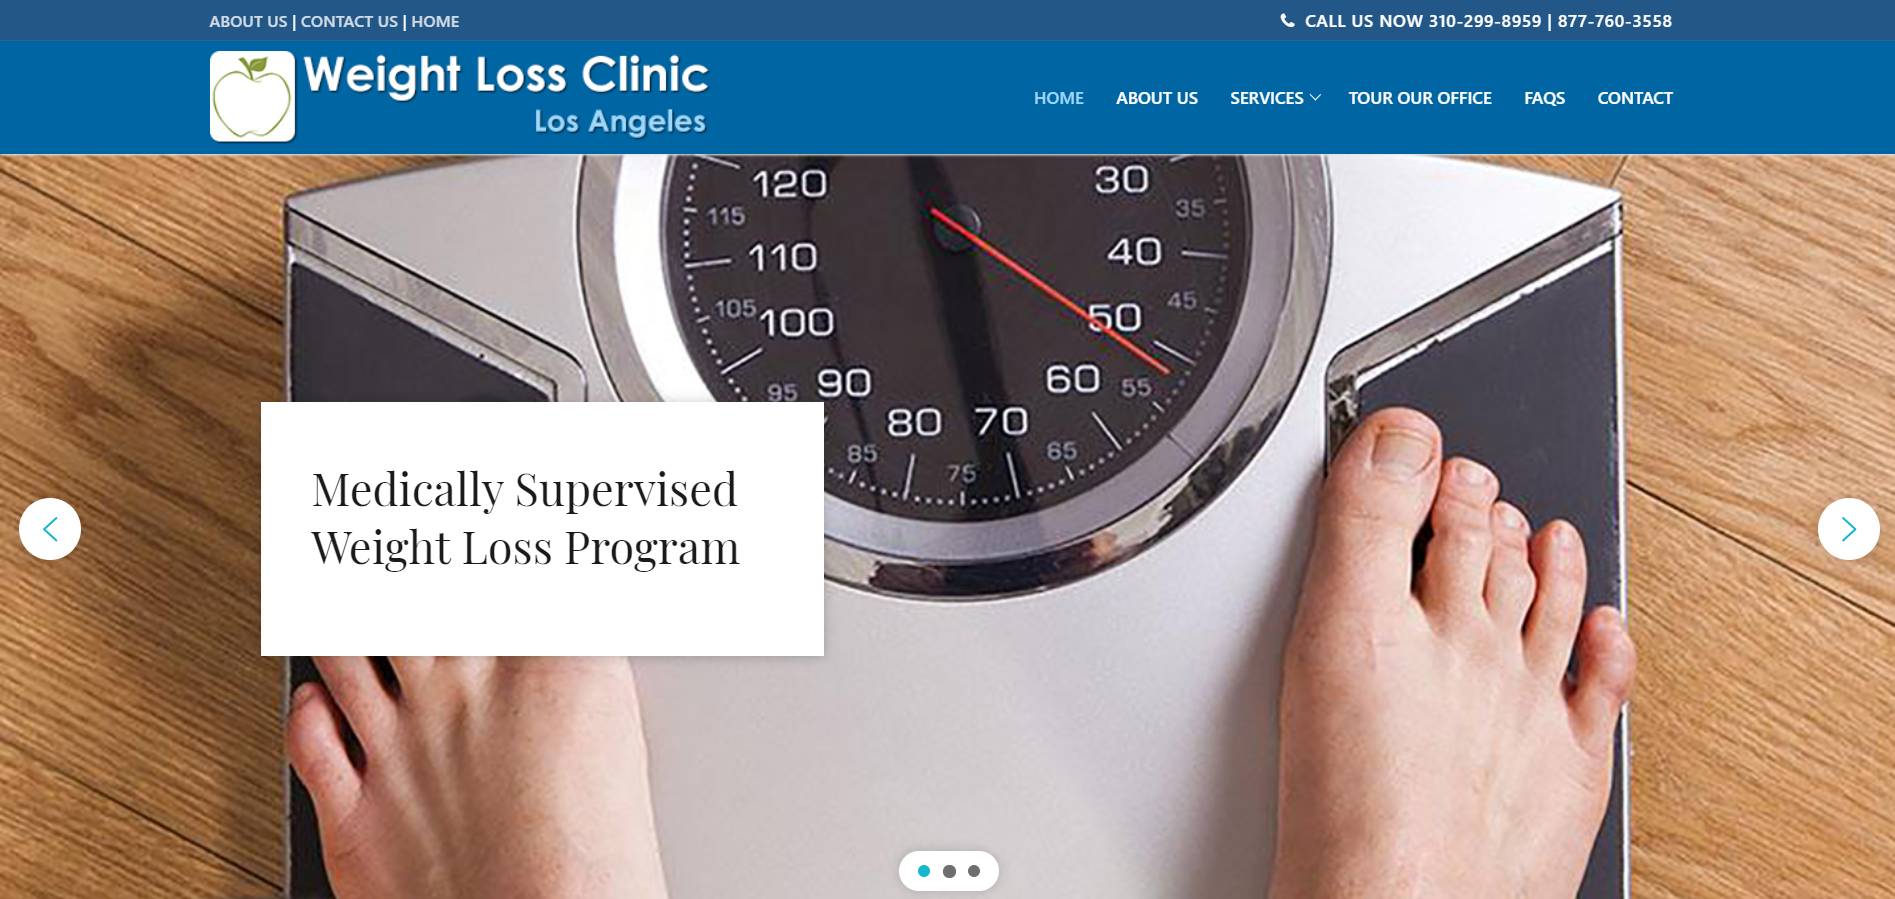 Weight Loss Clinic Los Angeles